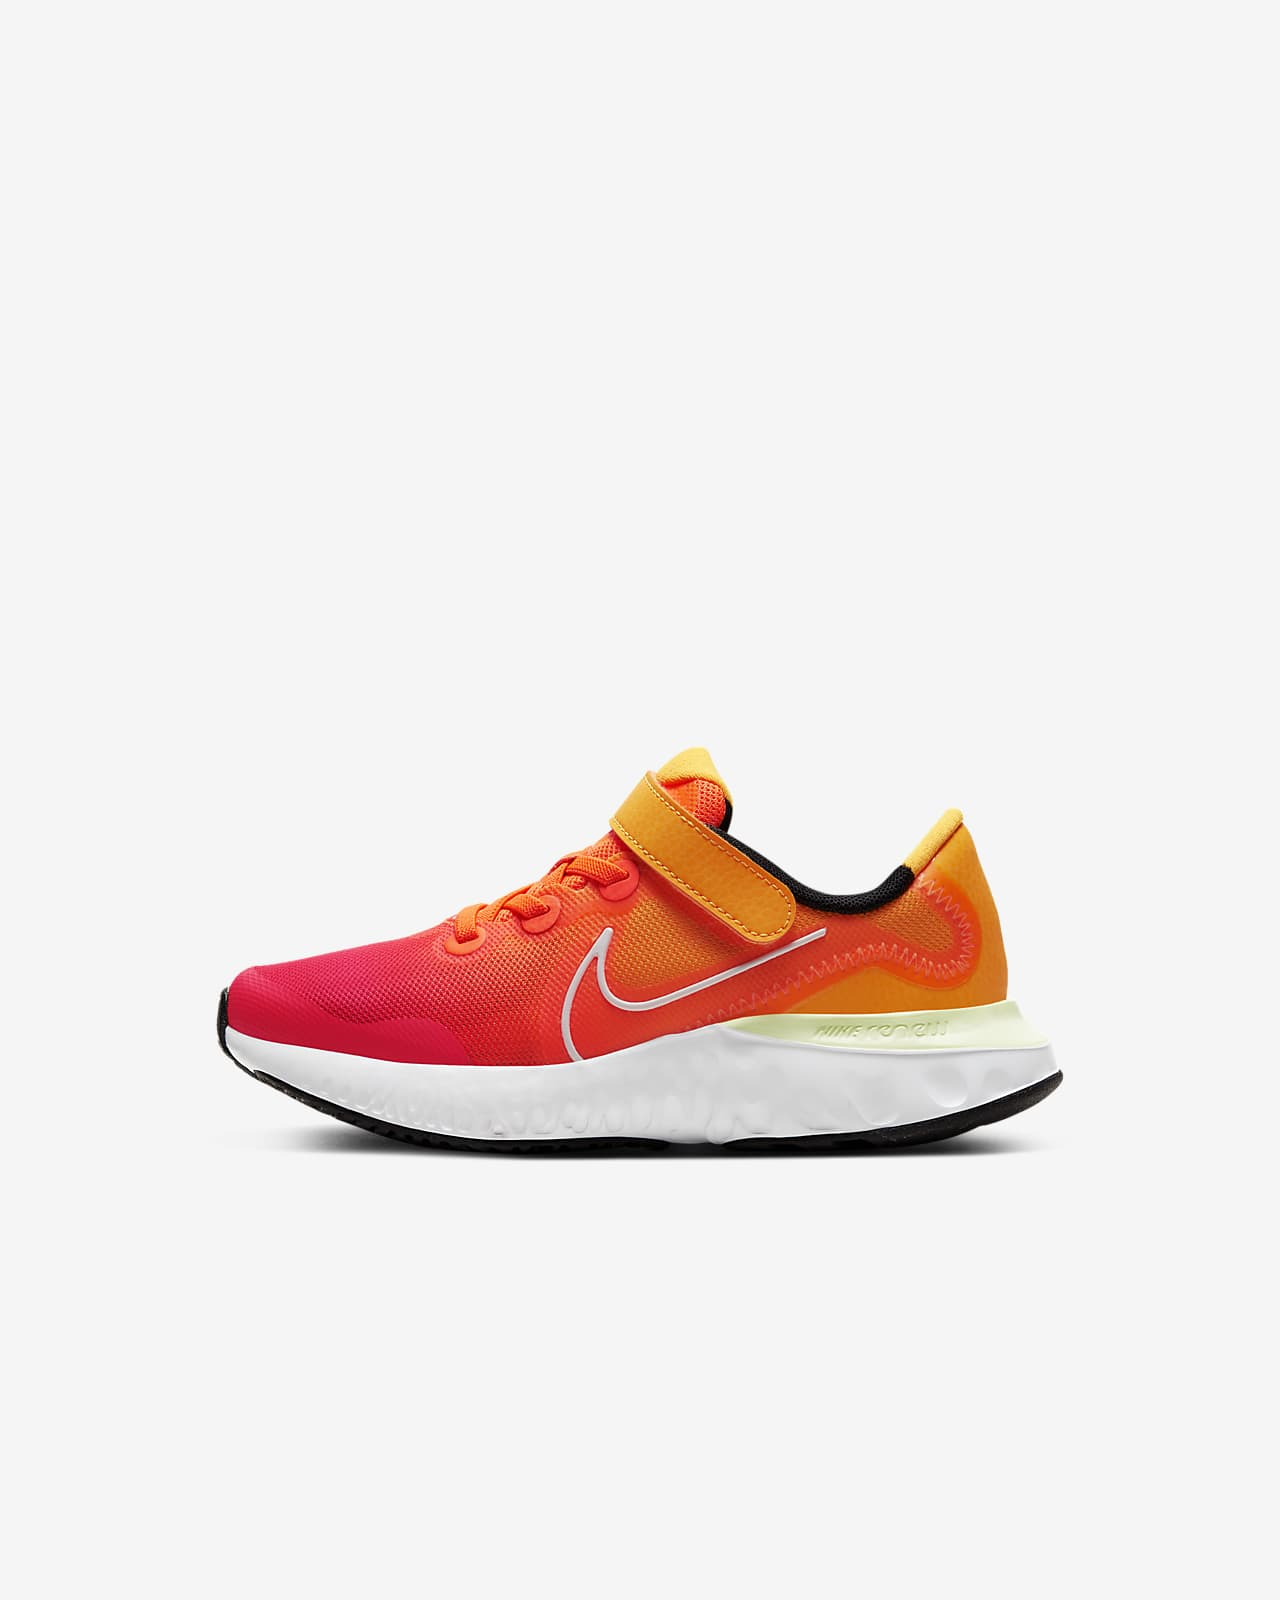 Nike Renew Run D2N Little Kids' Shoe